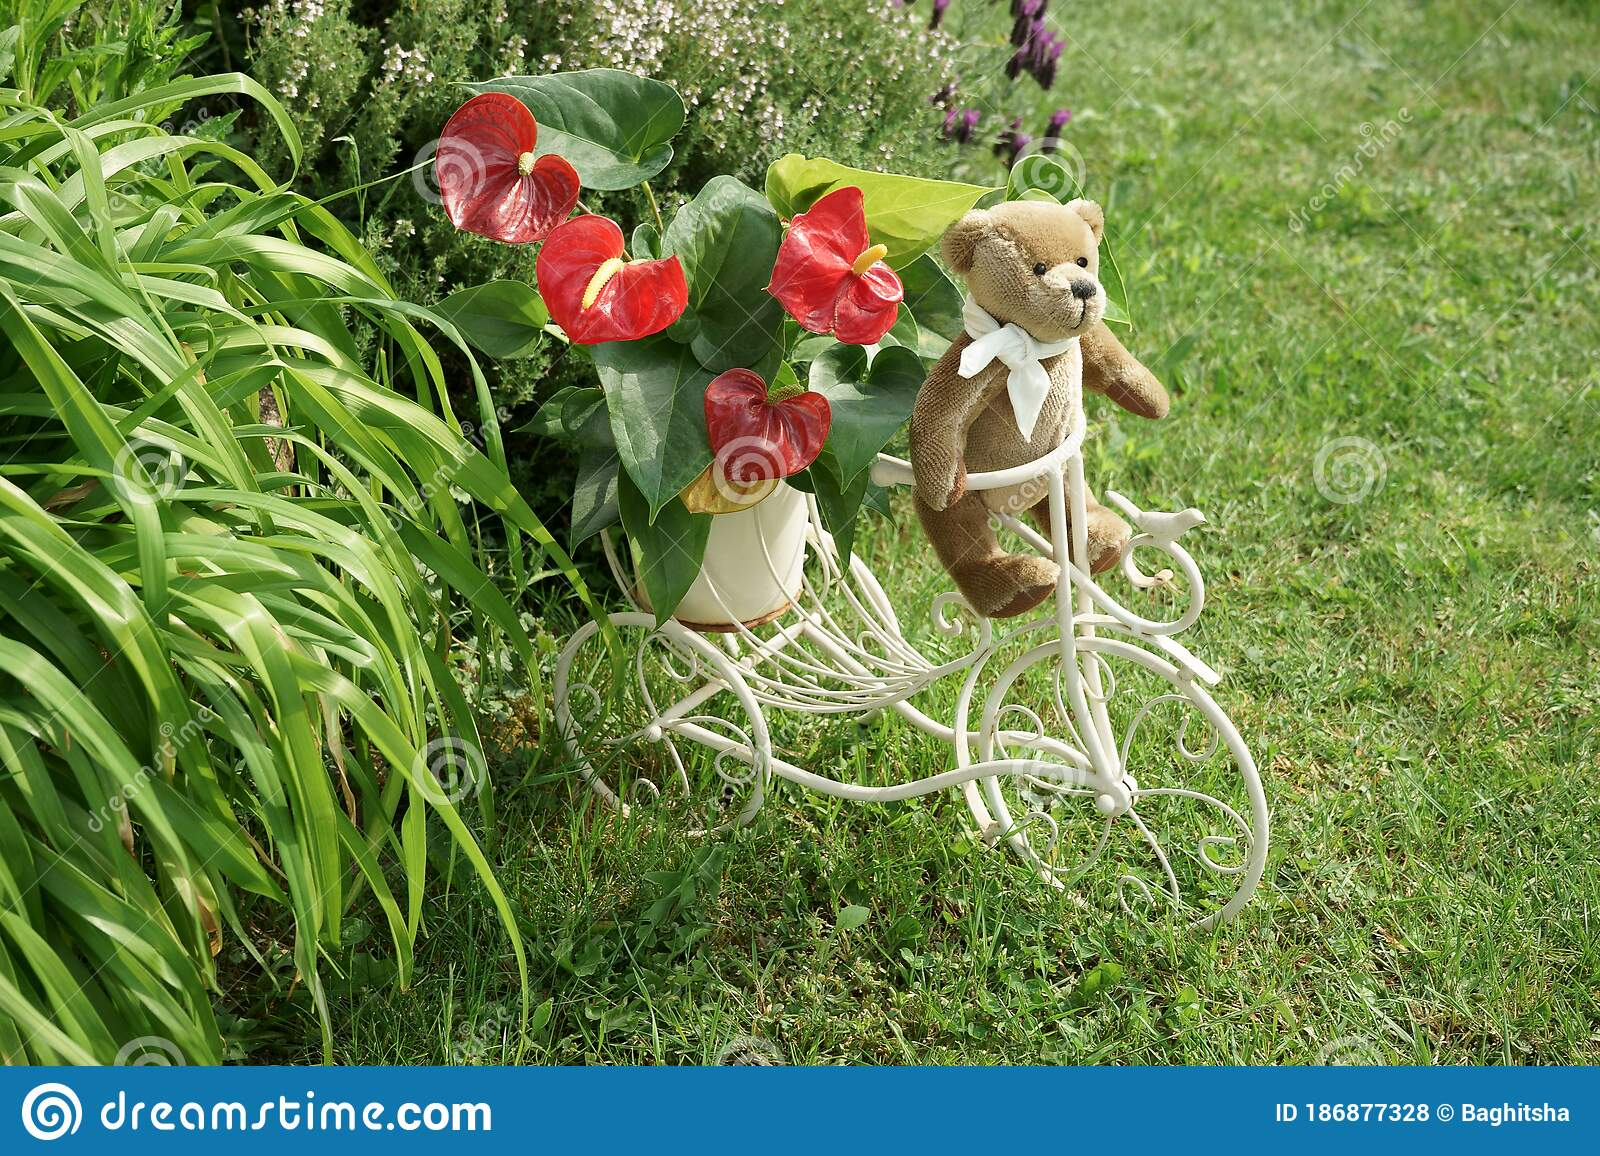 Vintage Teddy Bear On Retro Tricycle In Garden Stock Photo Image Of Driving Vegetation 186877328